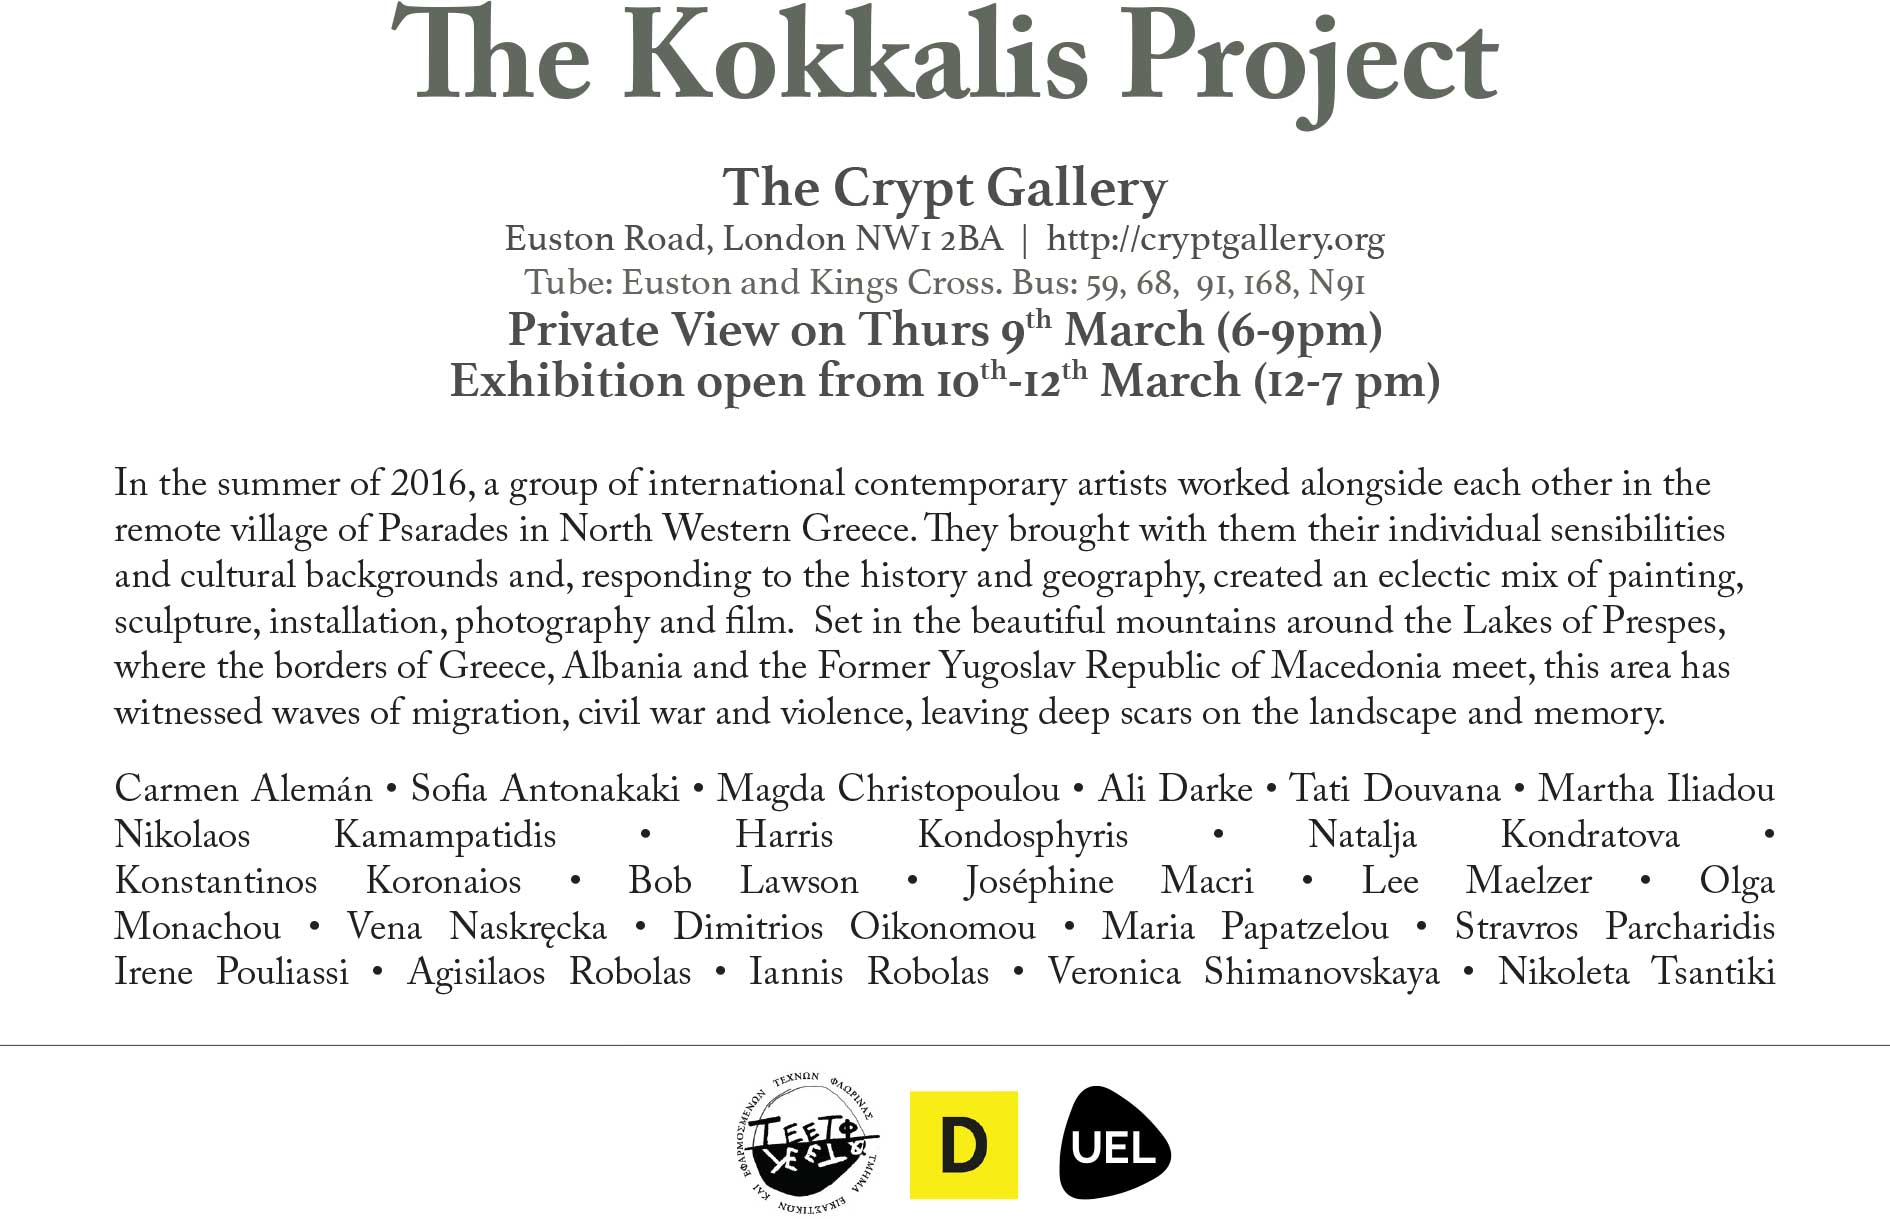 The-Kokkalis-Project_Crypt-Gallery.jpg